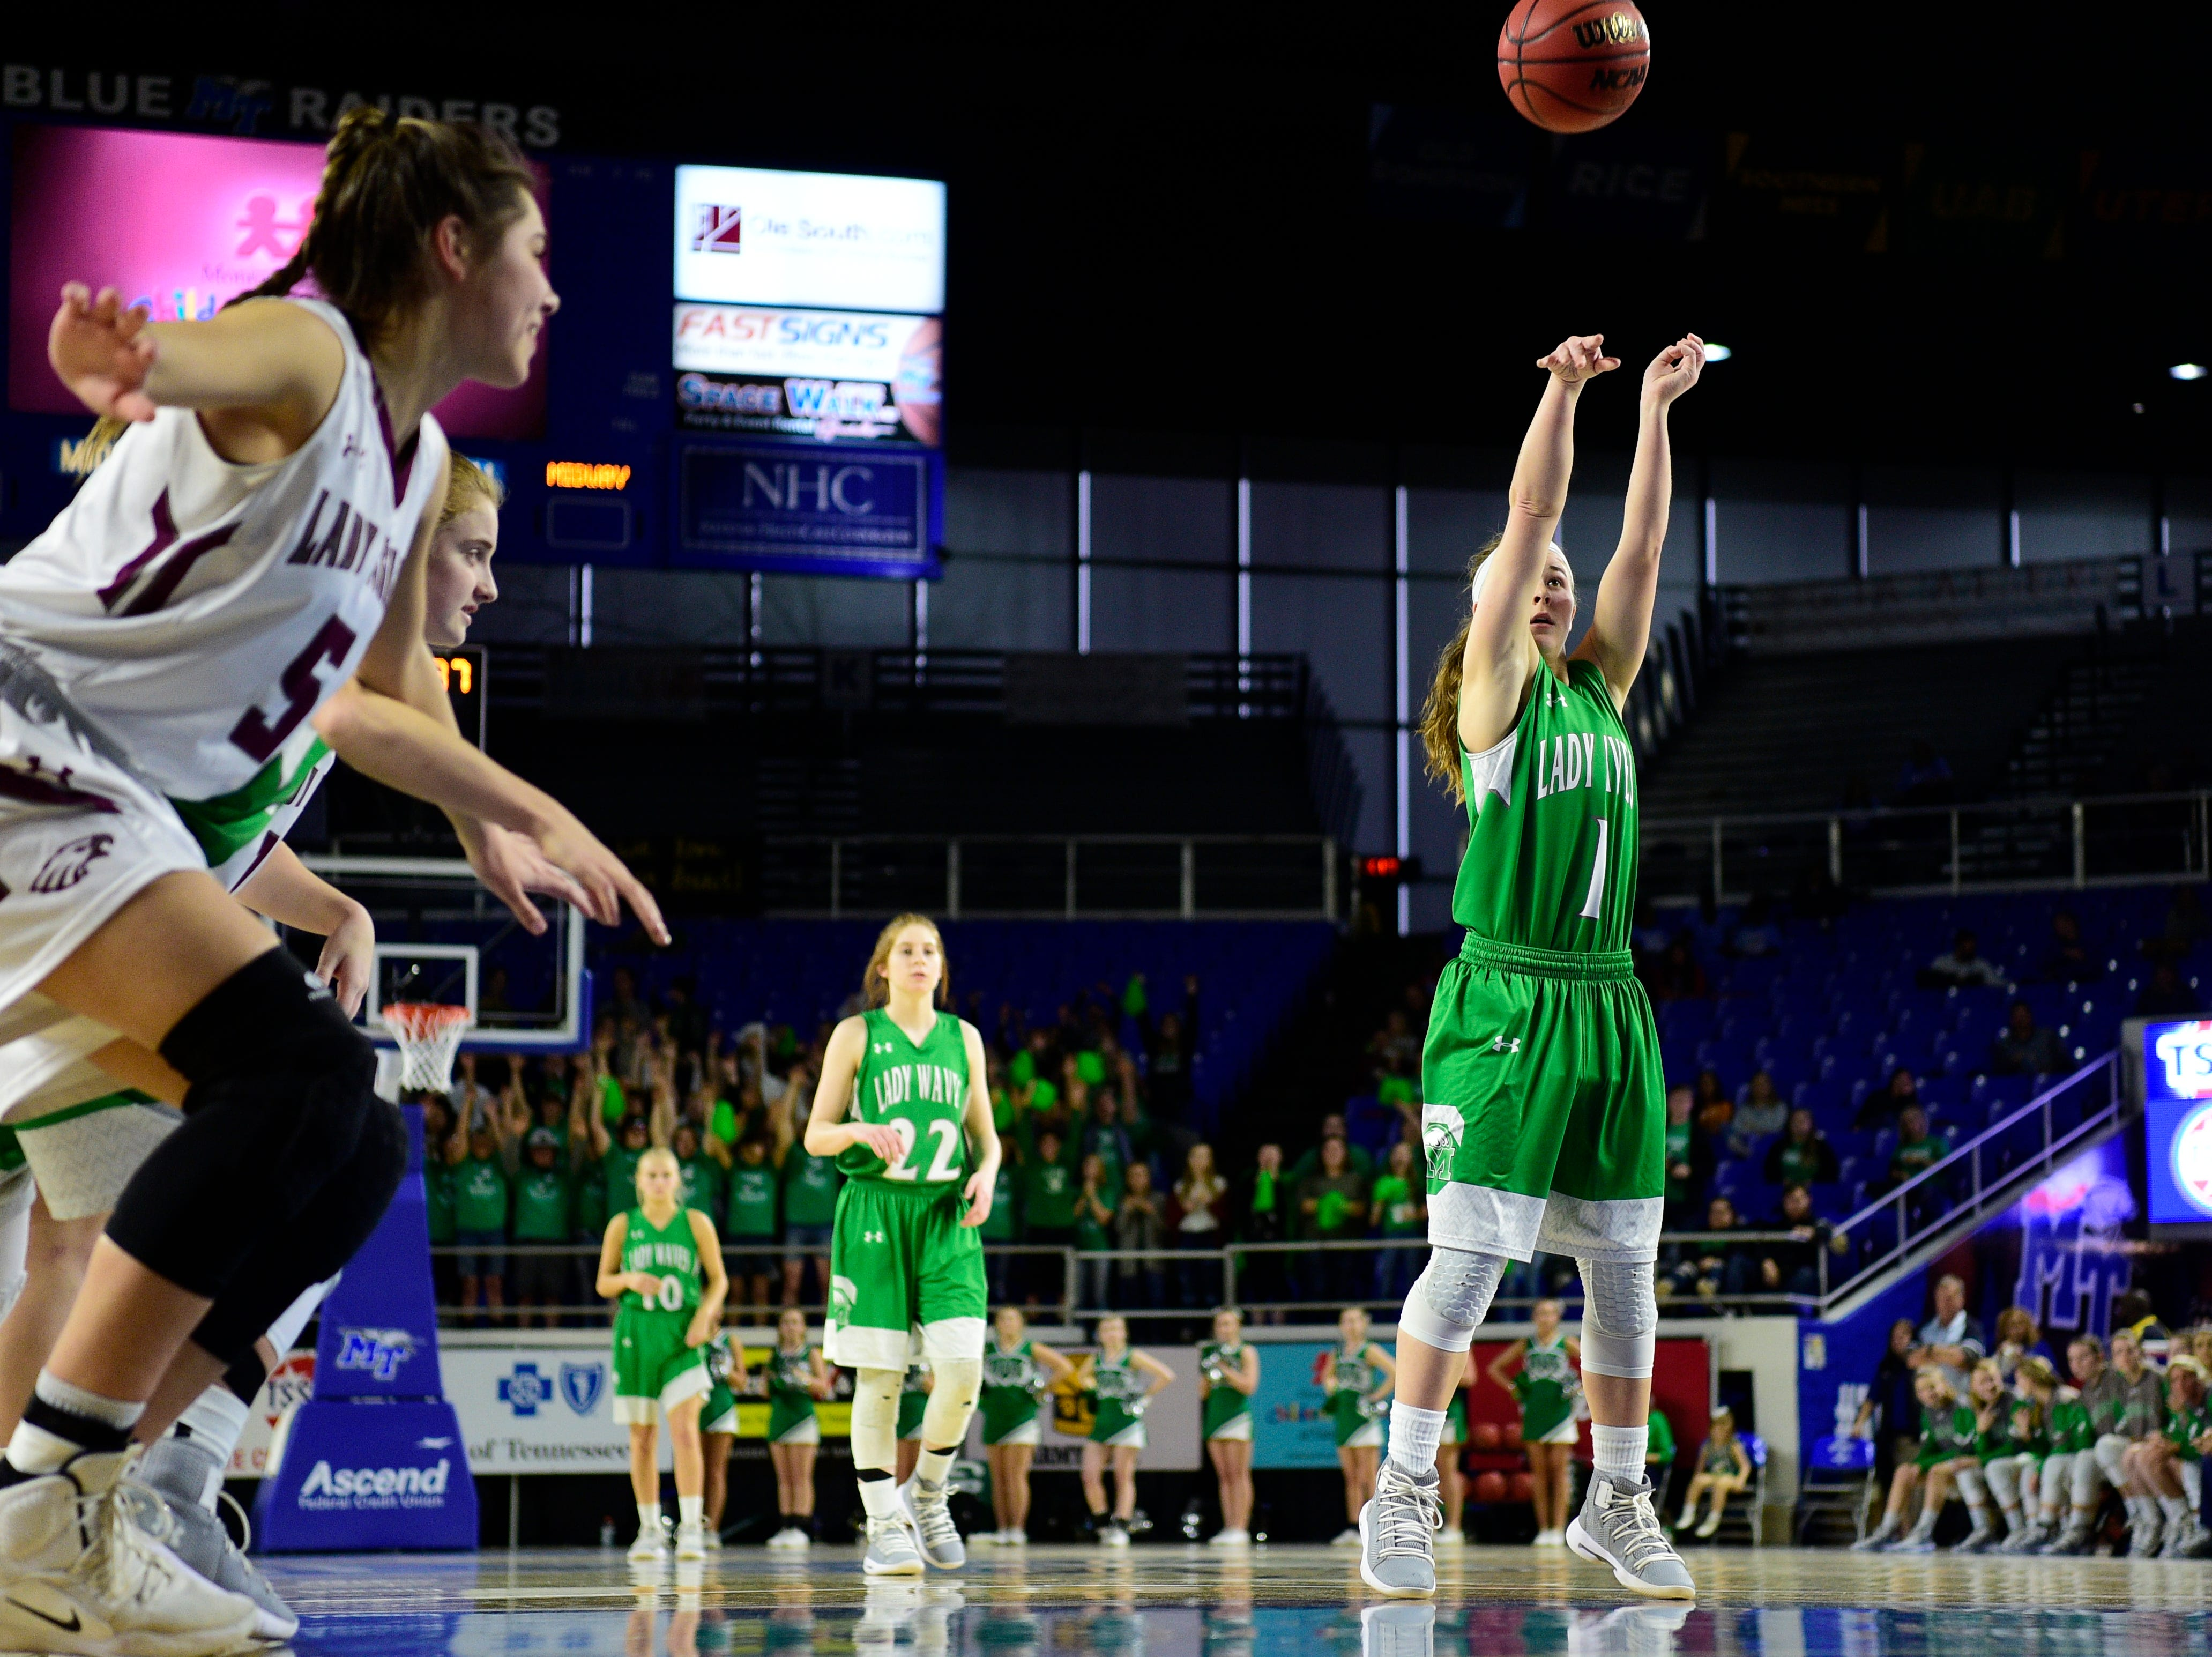 Midway's Caitlyn Ross (1) shoots a free-throw during a game between Eagleville and Midway at the TSSAA girls state tournament at the Murphy Center in Murfreesboro, Tennessee on Thursday, March 7, 2019.